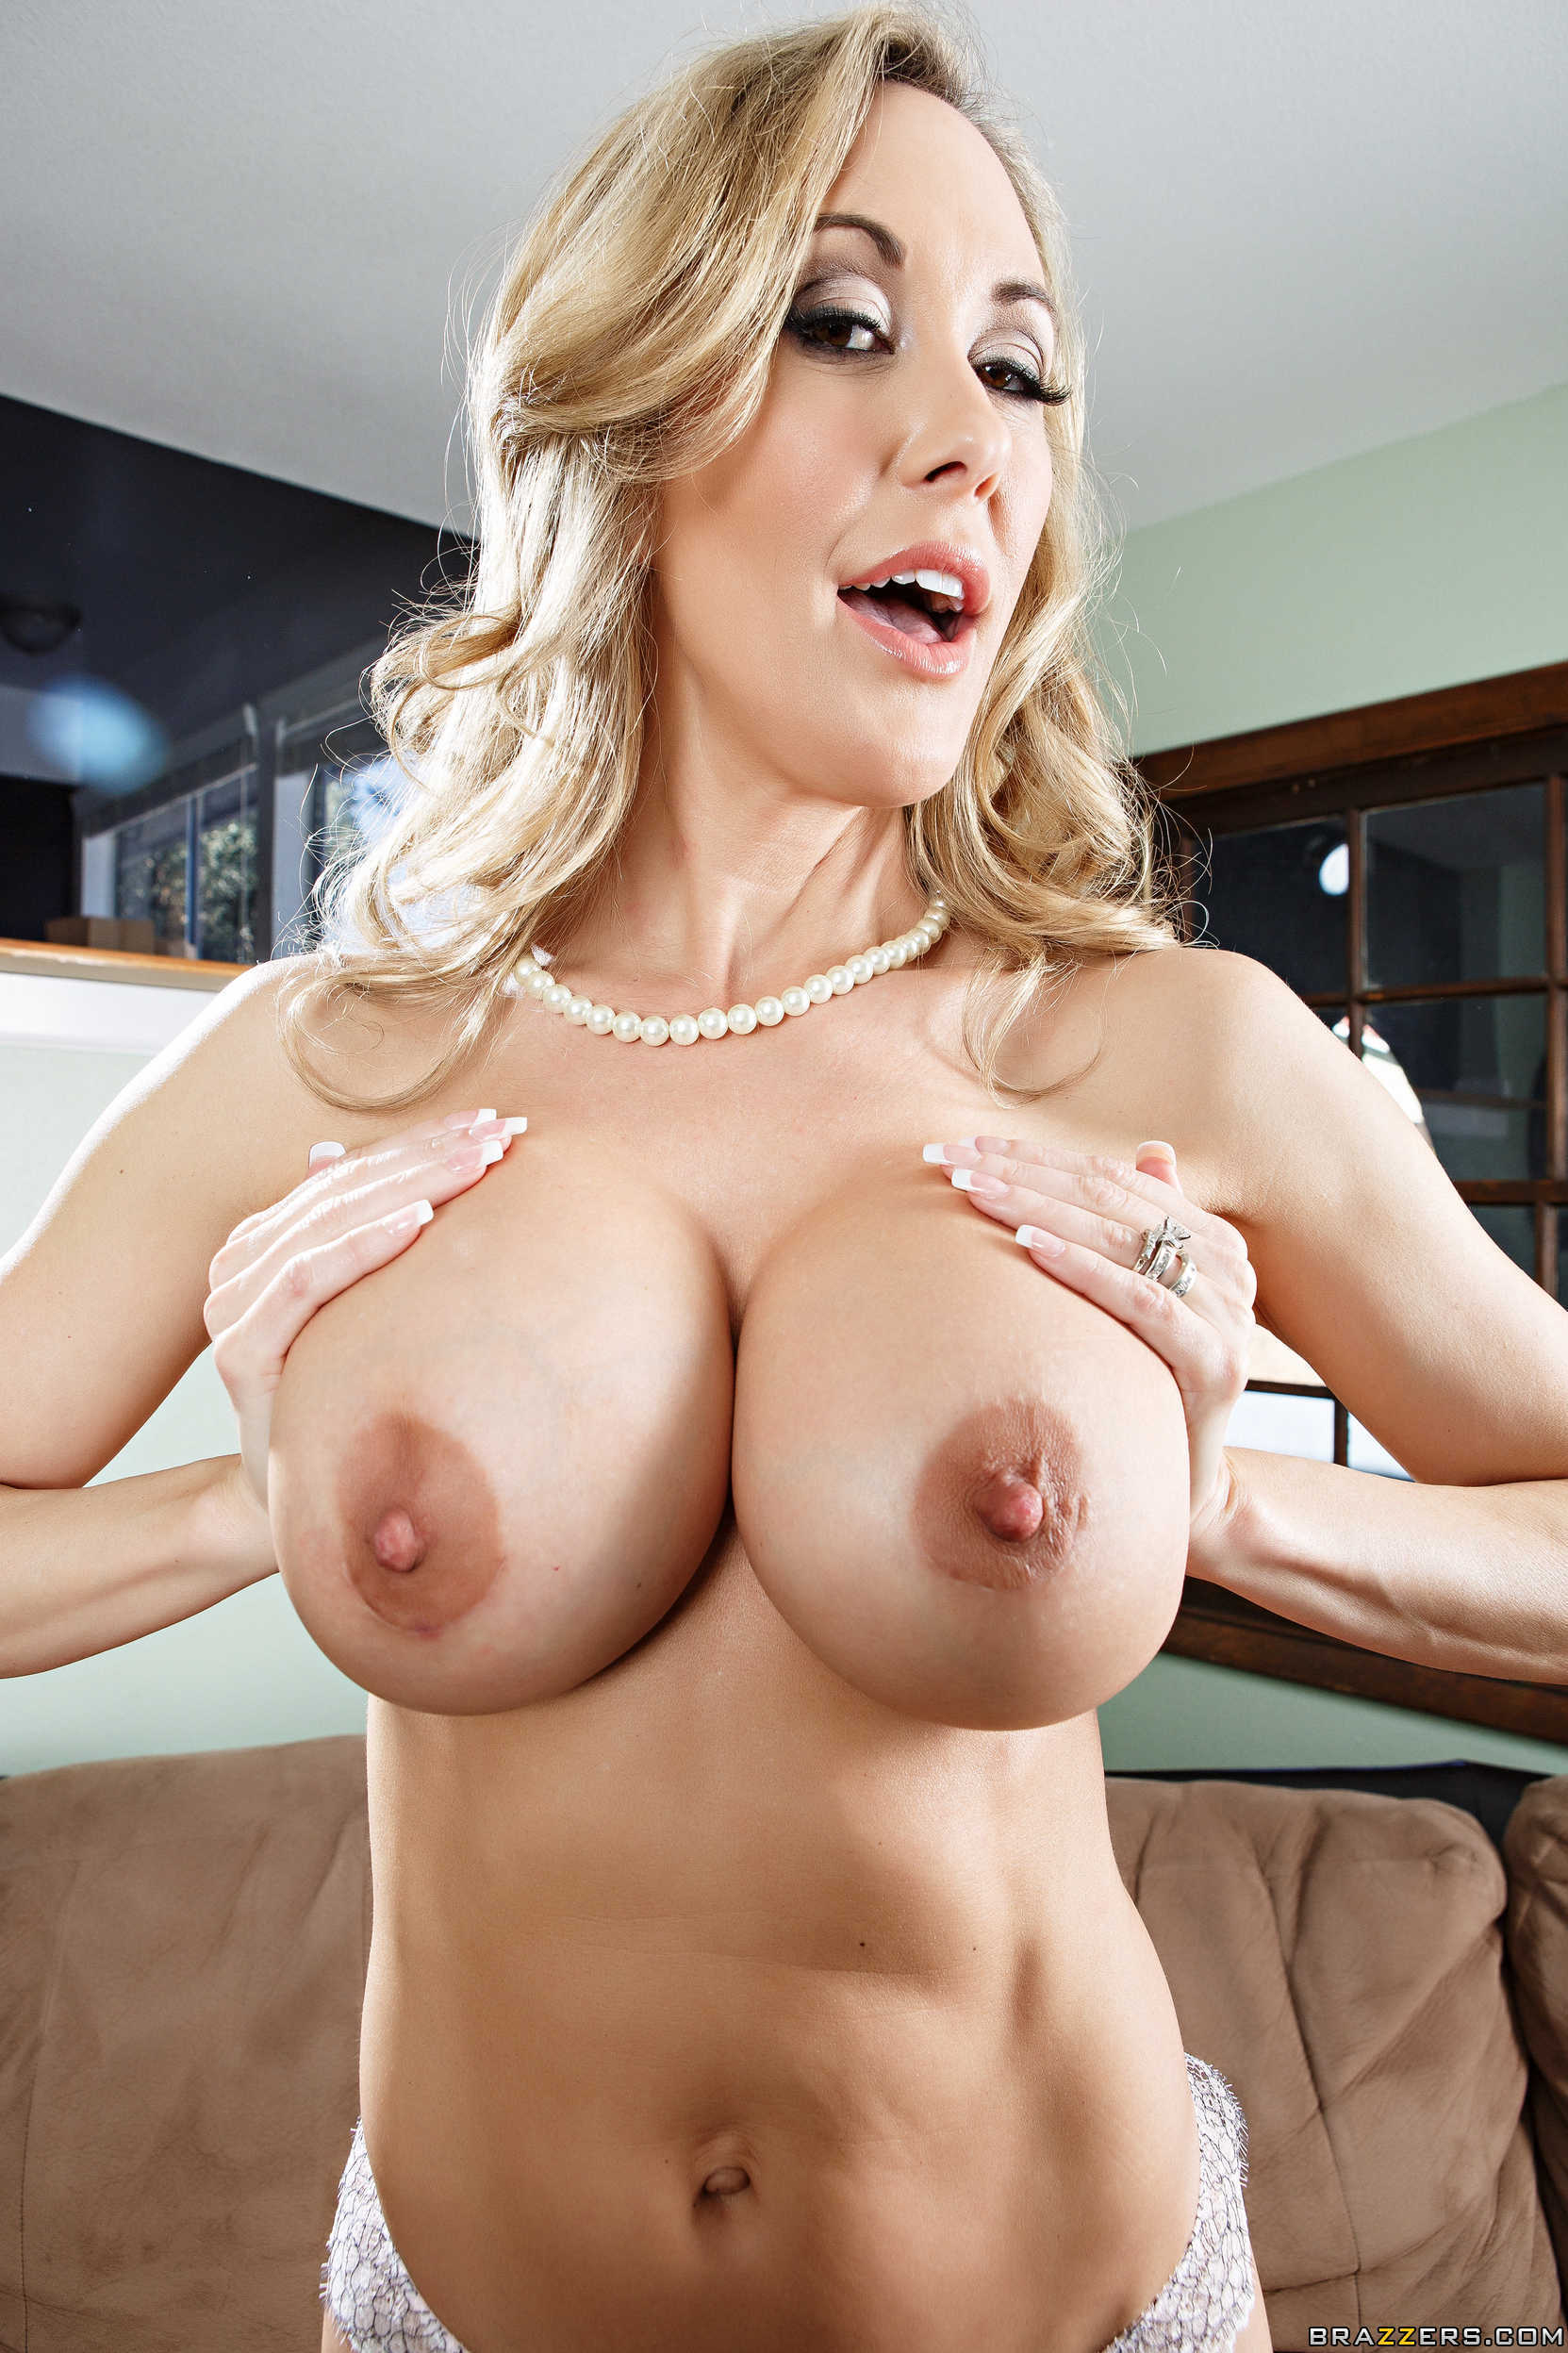 Really. You Naked pictures of brandi love agree